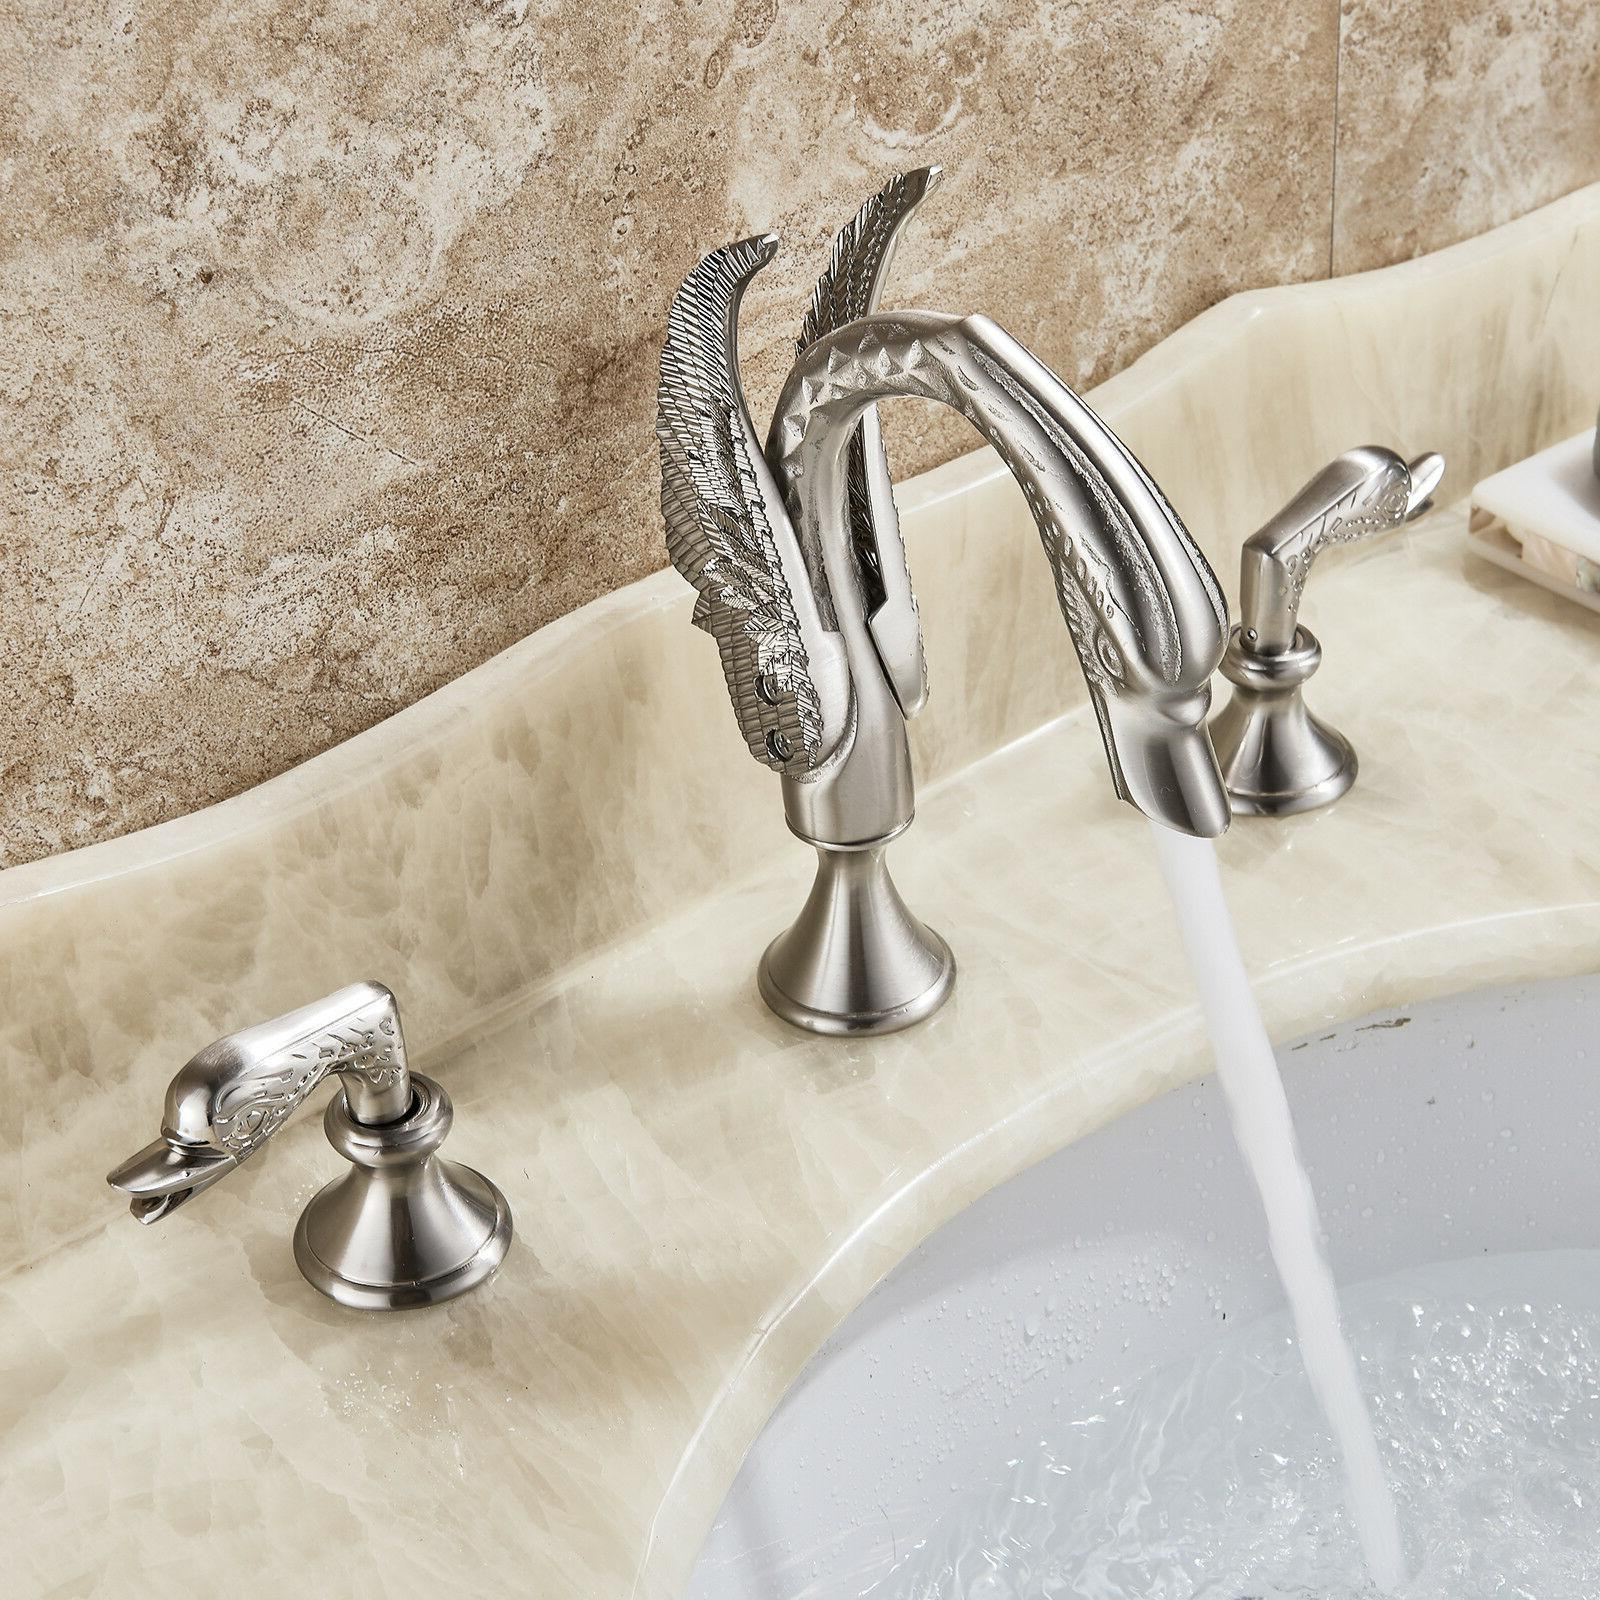 Brushed Nickel Widespread Countertop Tap